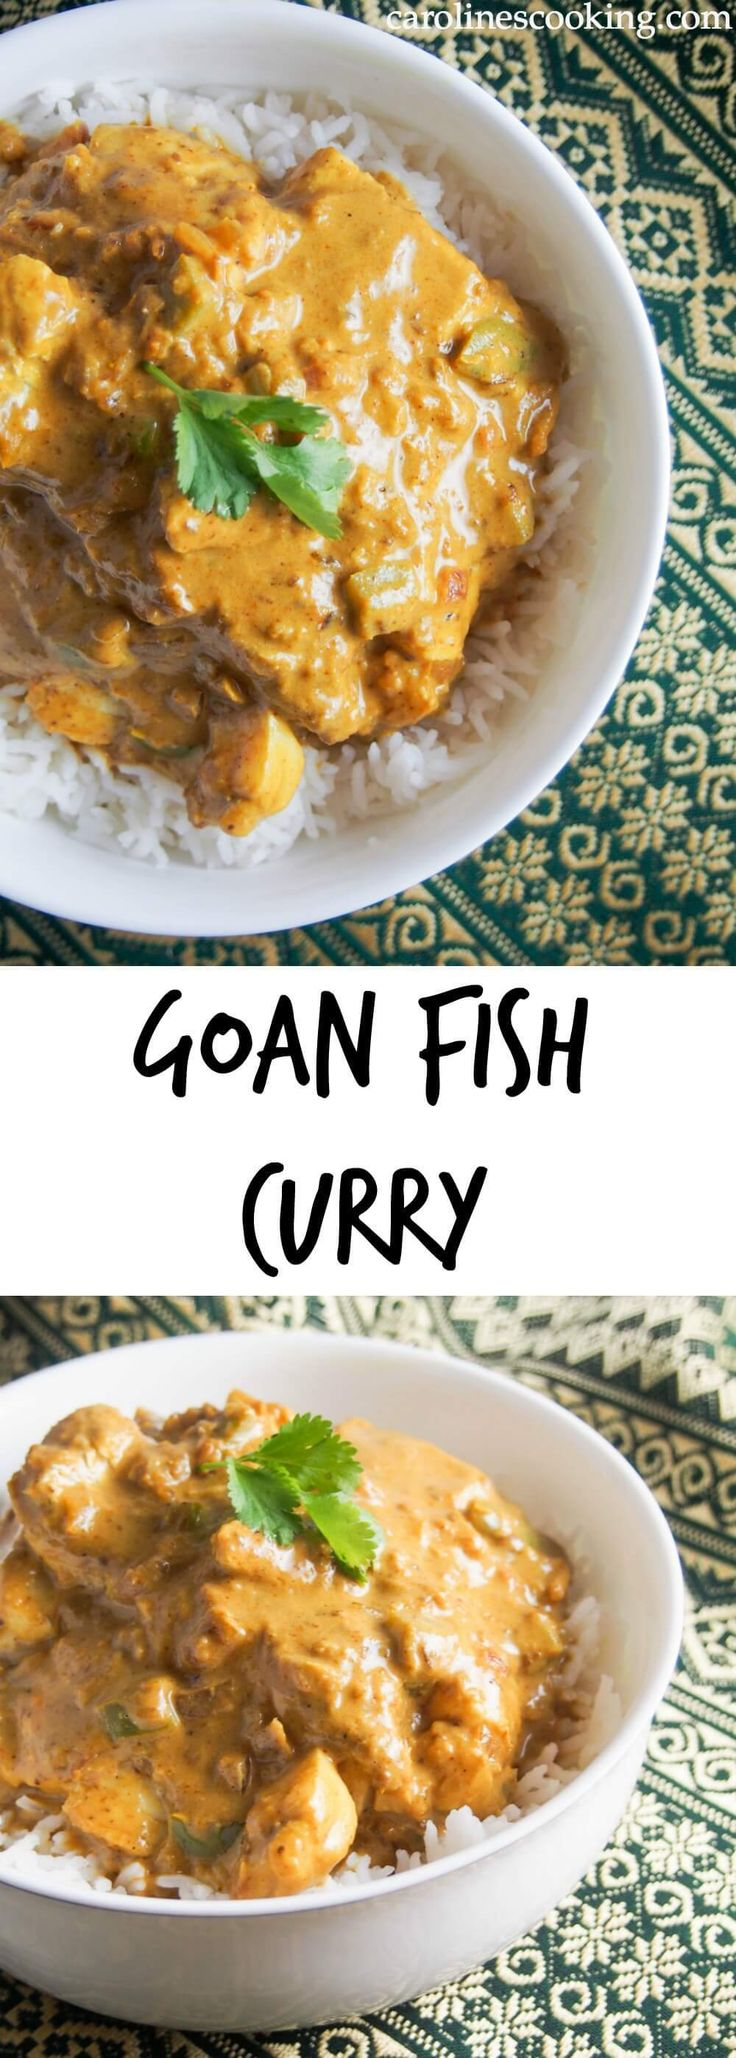 This Goan fish curry is really easy to make, packed with flavor & spice, and ready in less than 30 minutes. A delicious dish that's way better than take out.